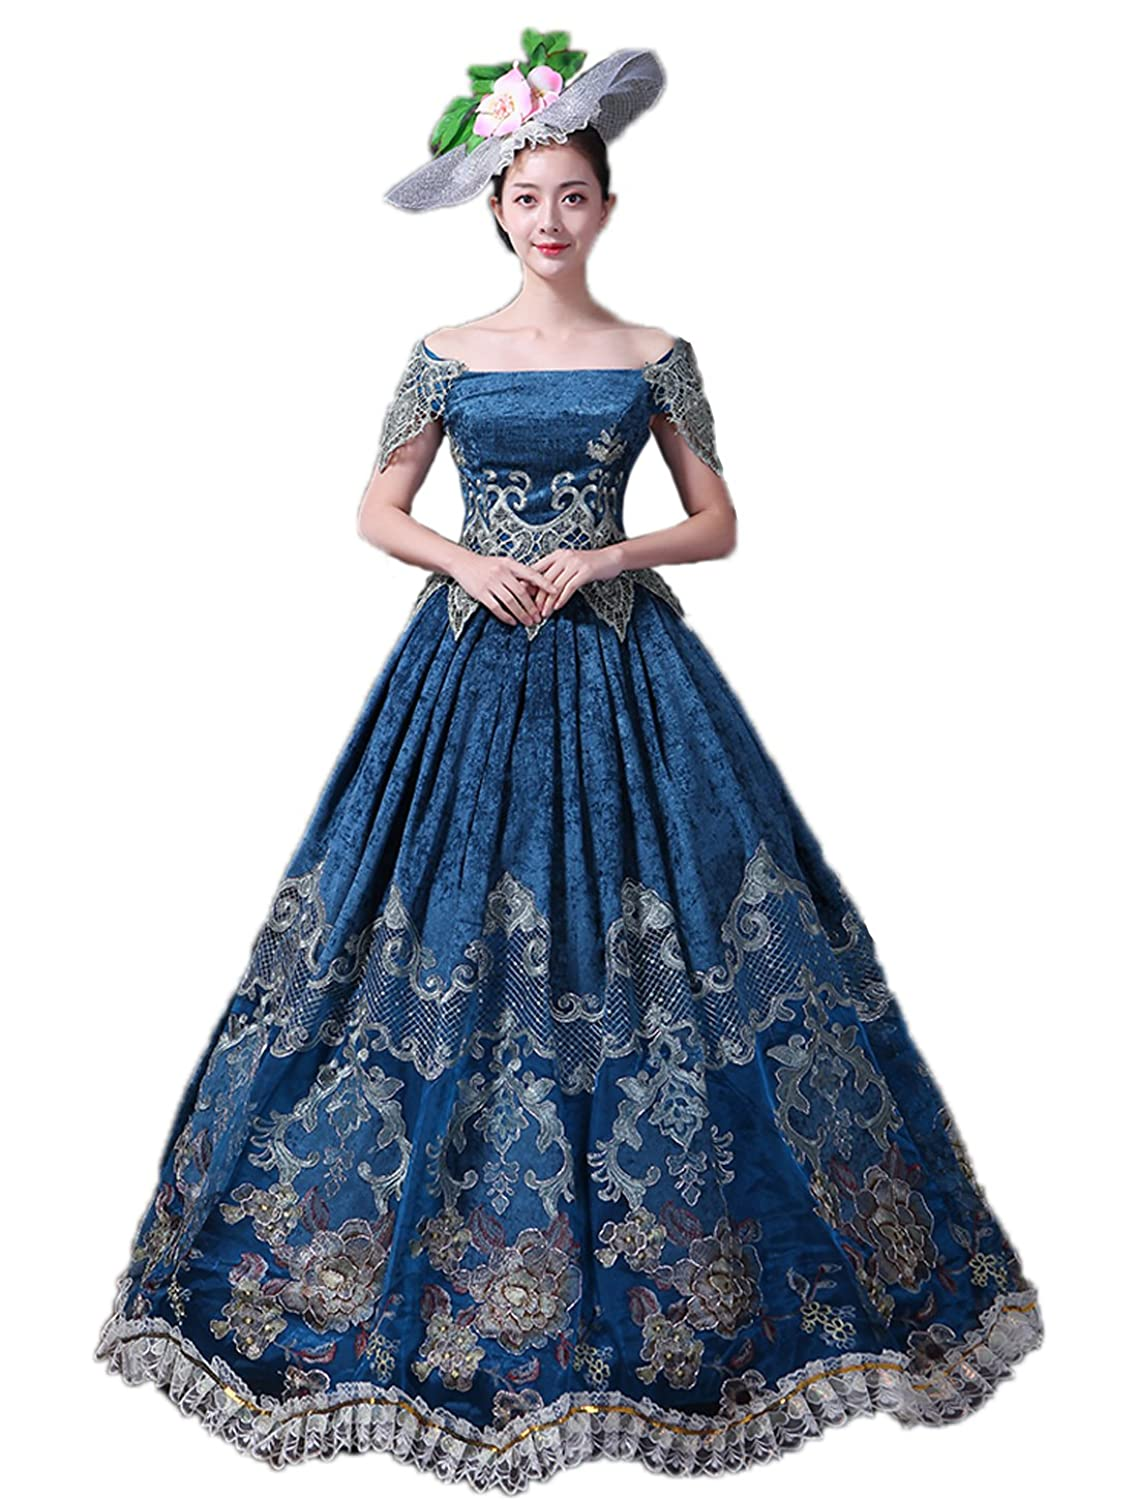 Old Fashioned Dresses | Old Dress Styles Zukzi Womens Plus Size Elegant Recoco Victorian Dress Costume Ball Gowns $169.99 AT vintagedancer.com